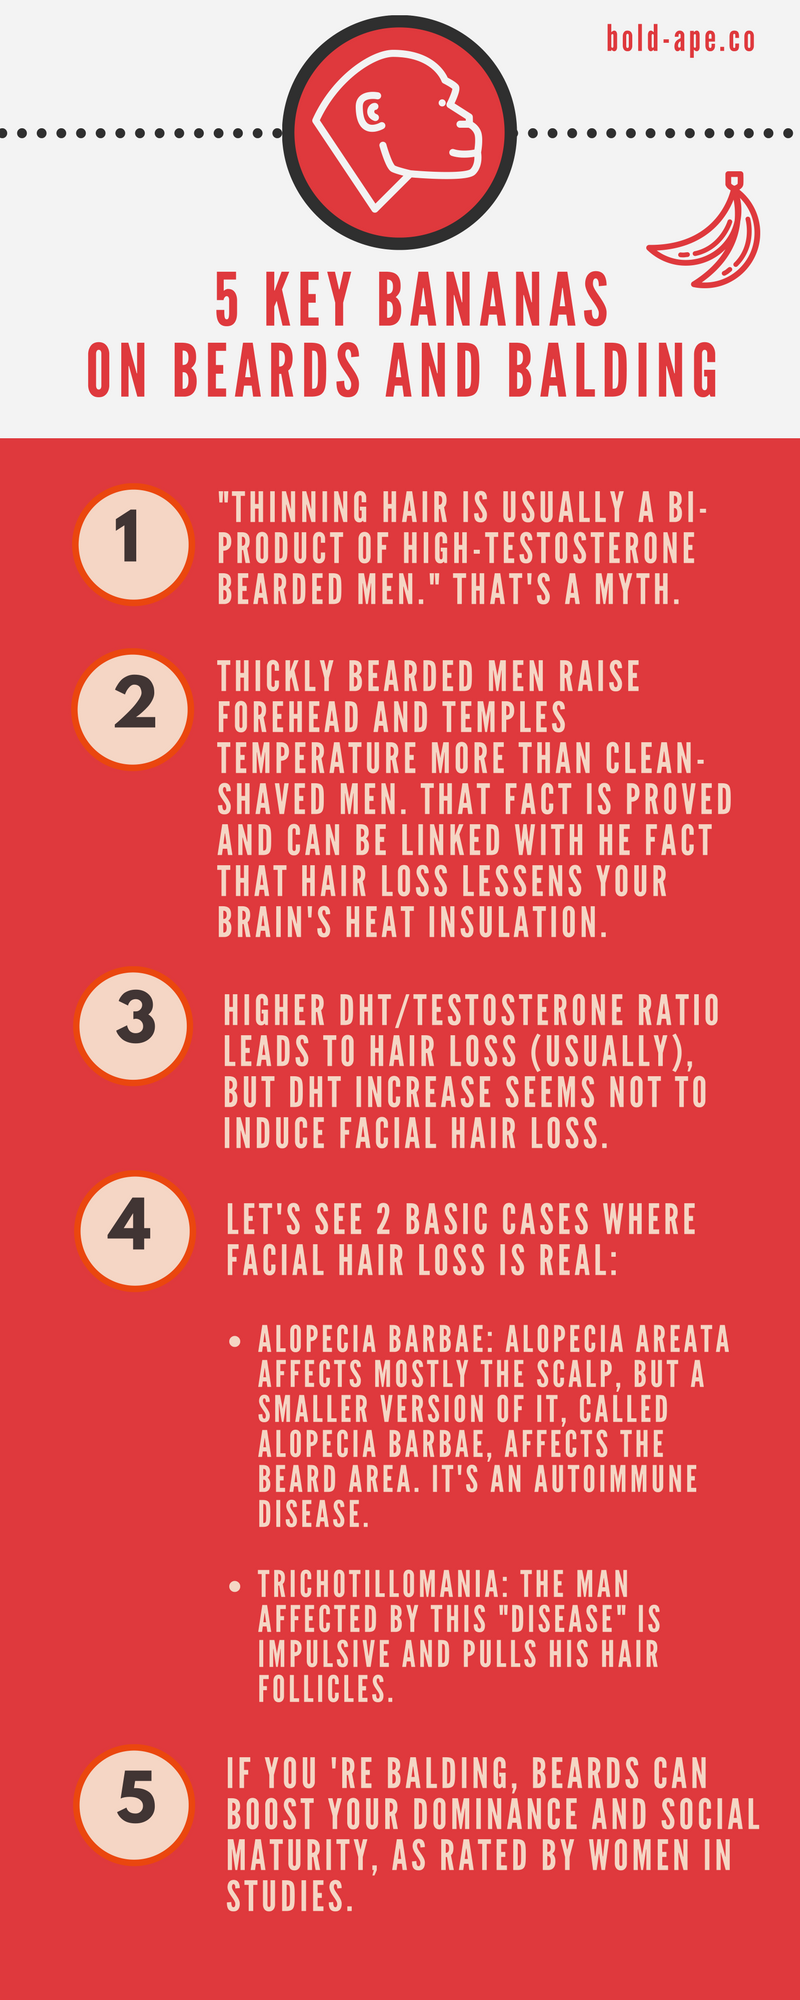 boldape Infographic on beards and baldness